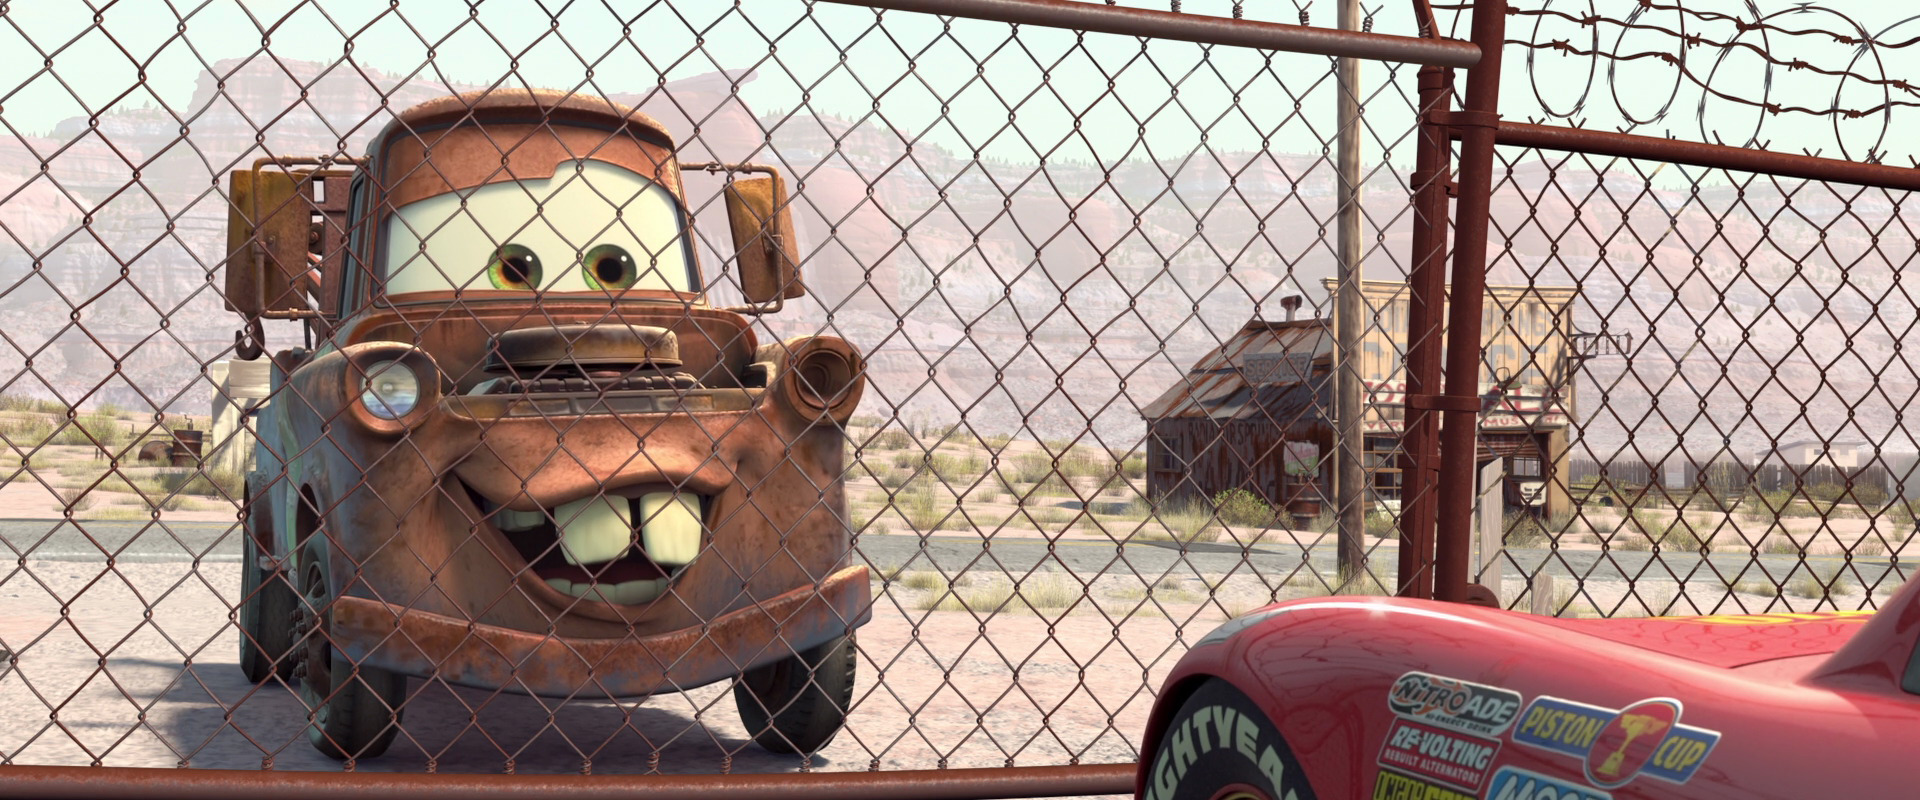 Mater Disney Wiki Fandom Powered By Wikia Spinner Iron Hiro Appearances